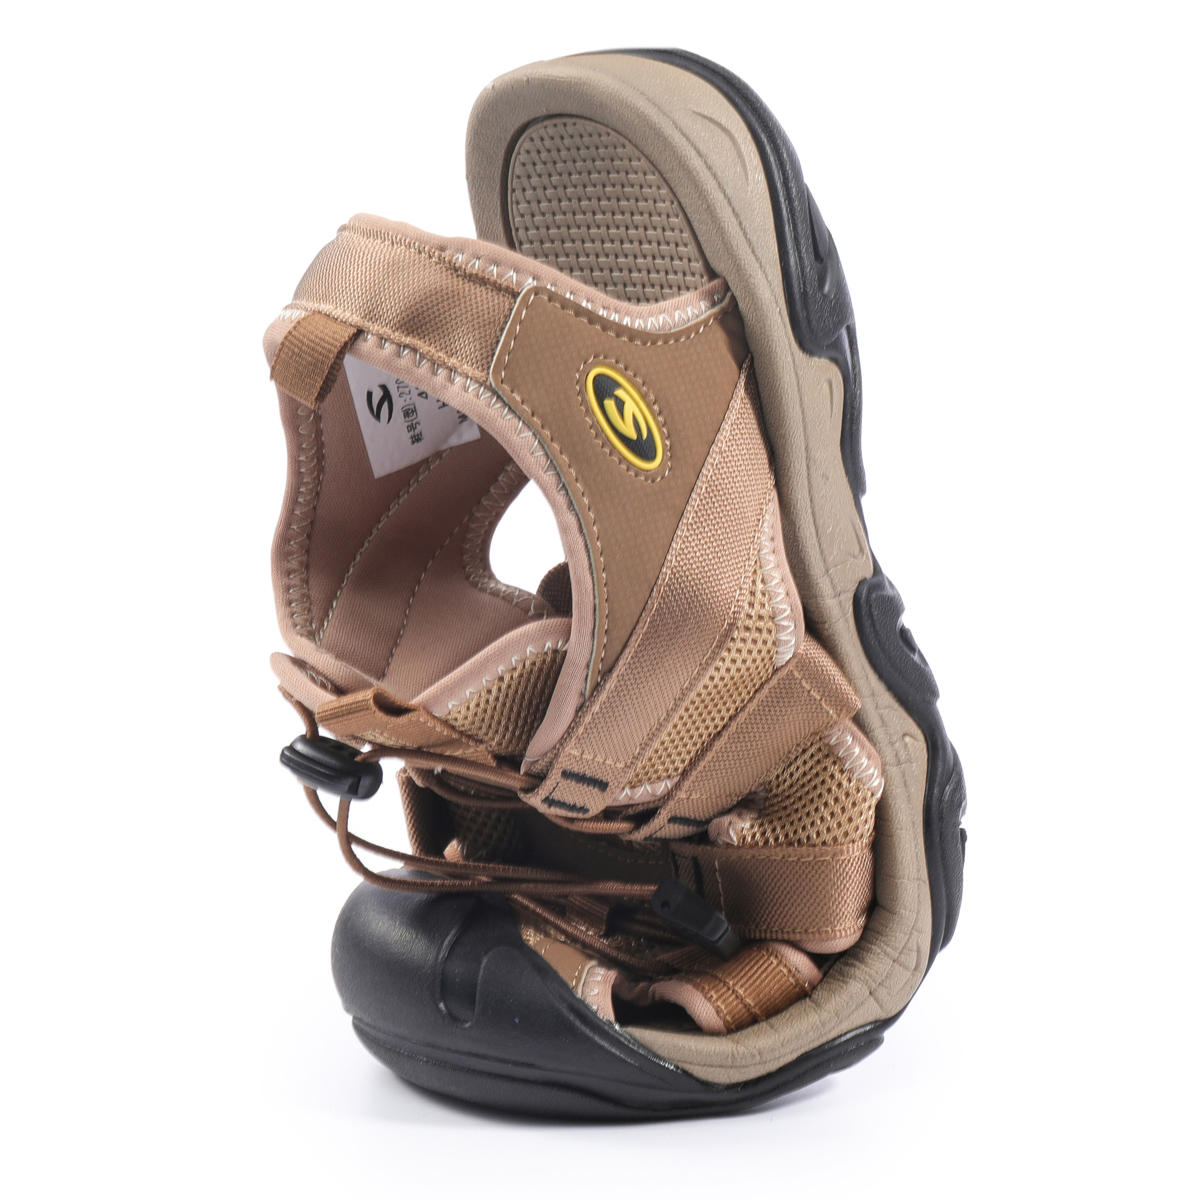 Gracosy Men's Sandals Leather Breathable Non-Slip Quick Drying Fish Sandals Clip Toe Sandals